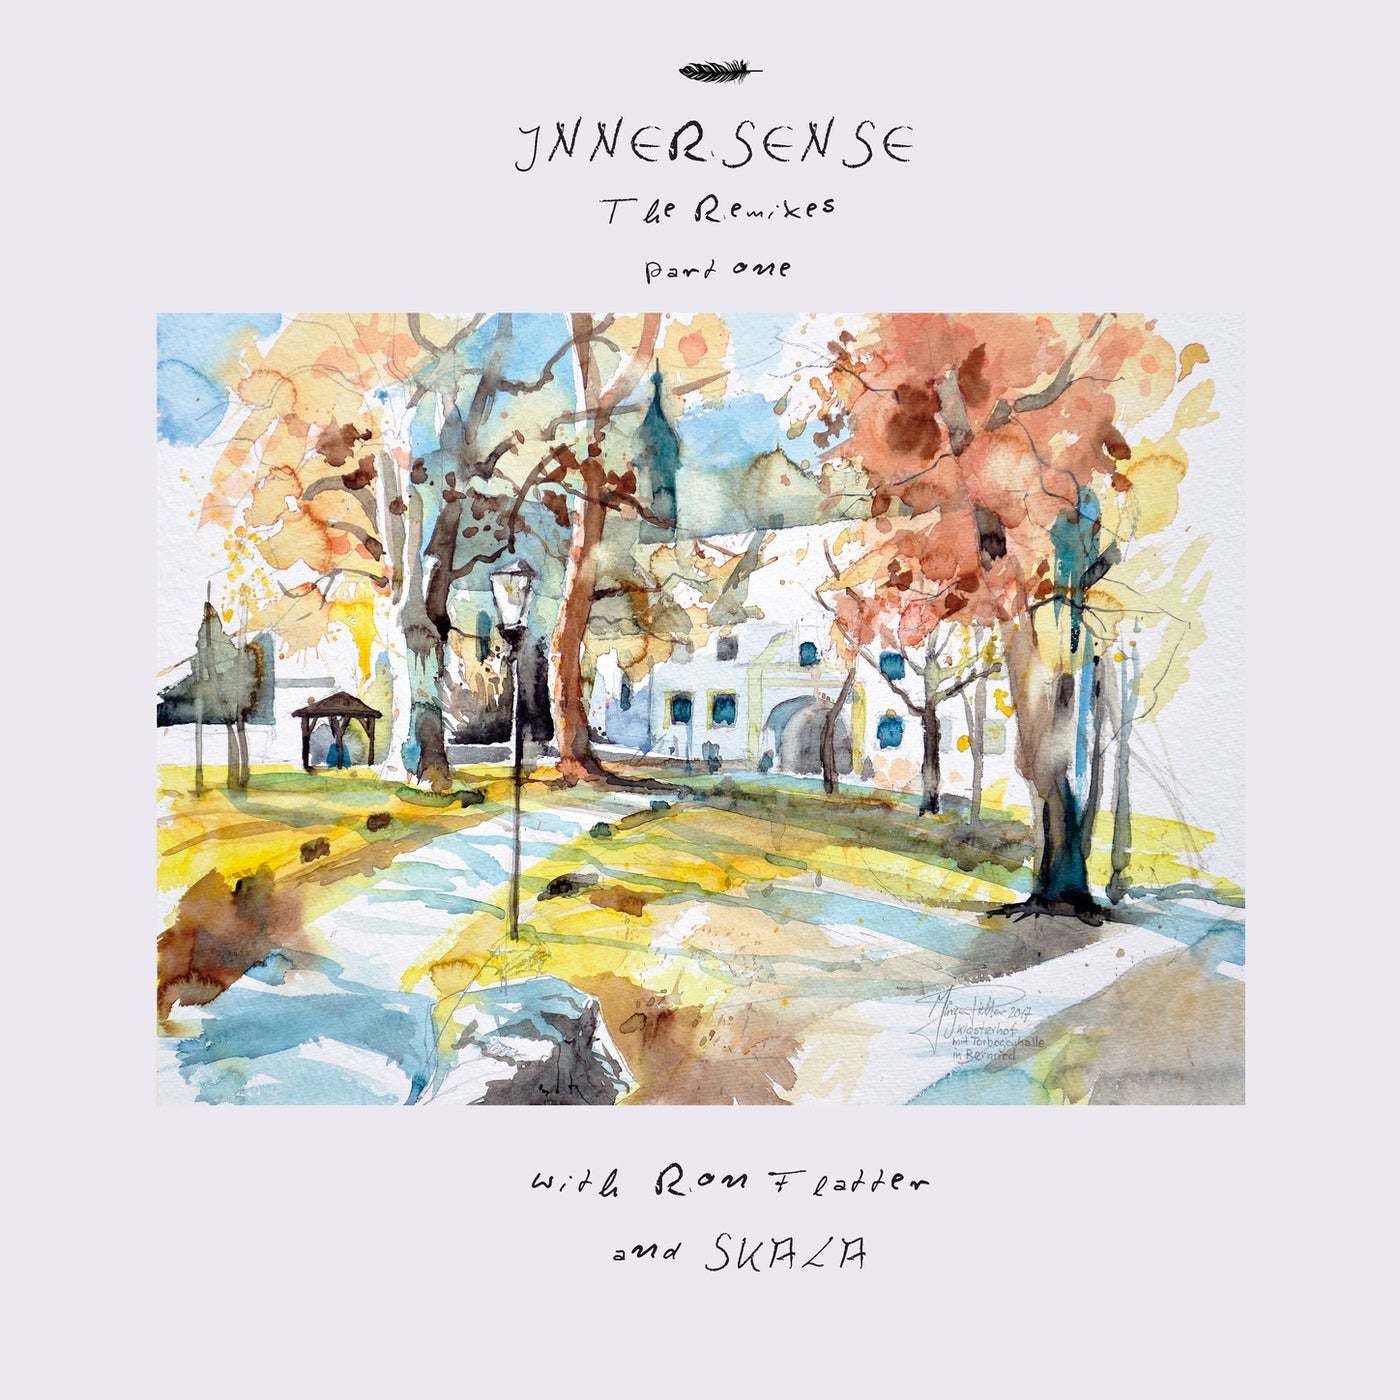 Download Innersense (The Remixes - Part One) on Electrobuzz